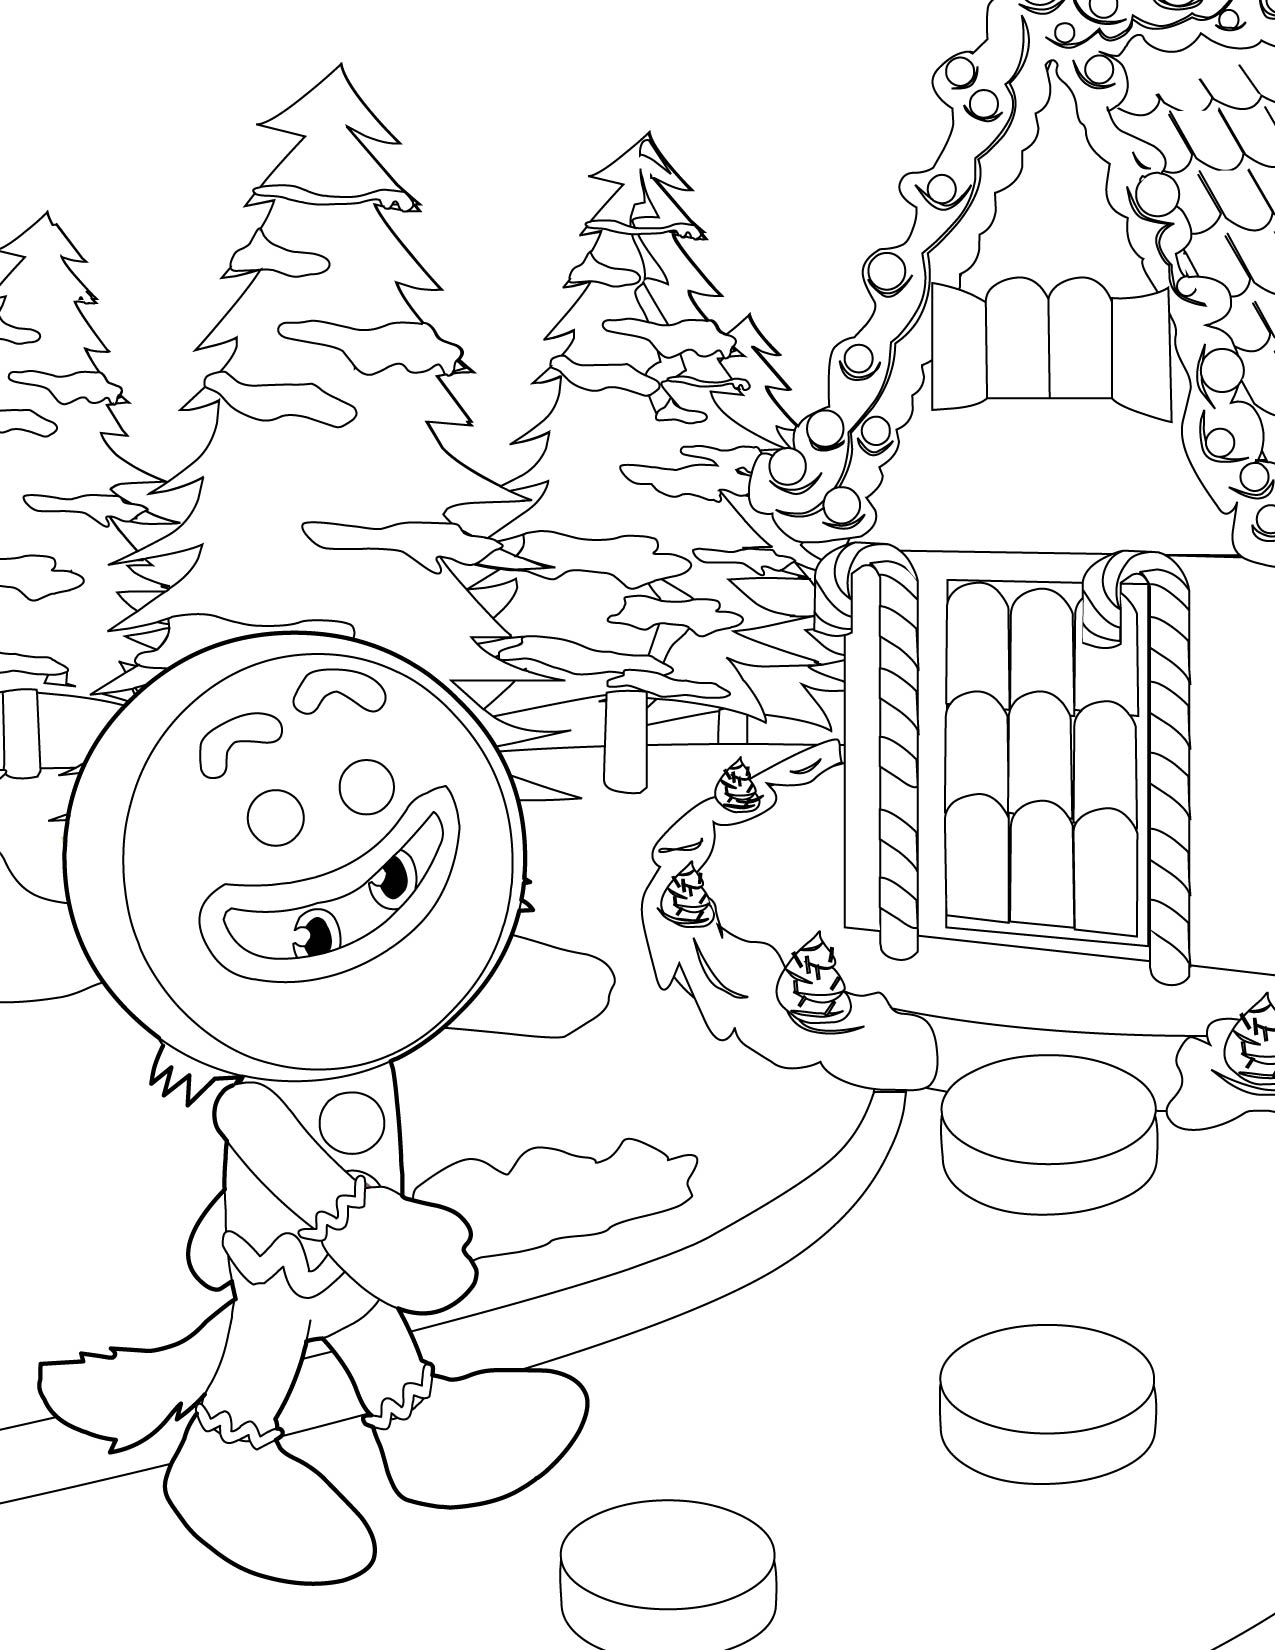 Gingerbread Man Coloring Page  Handipoints